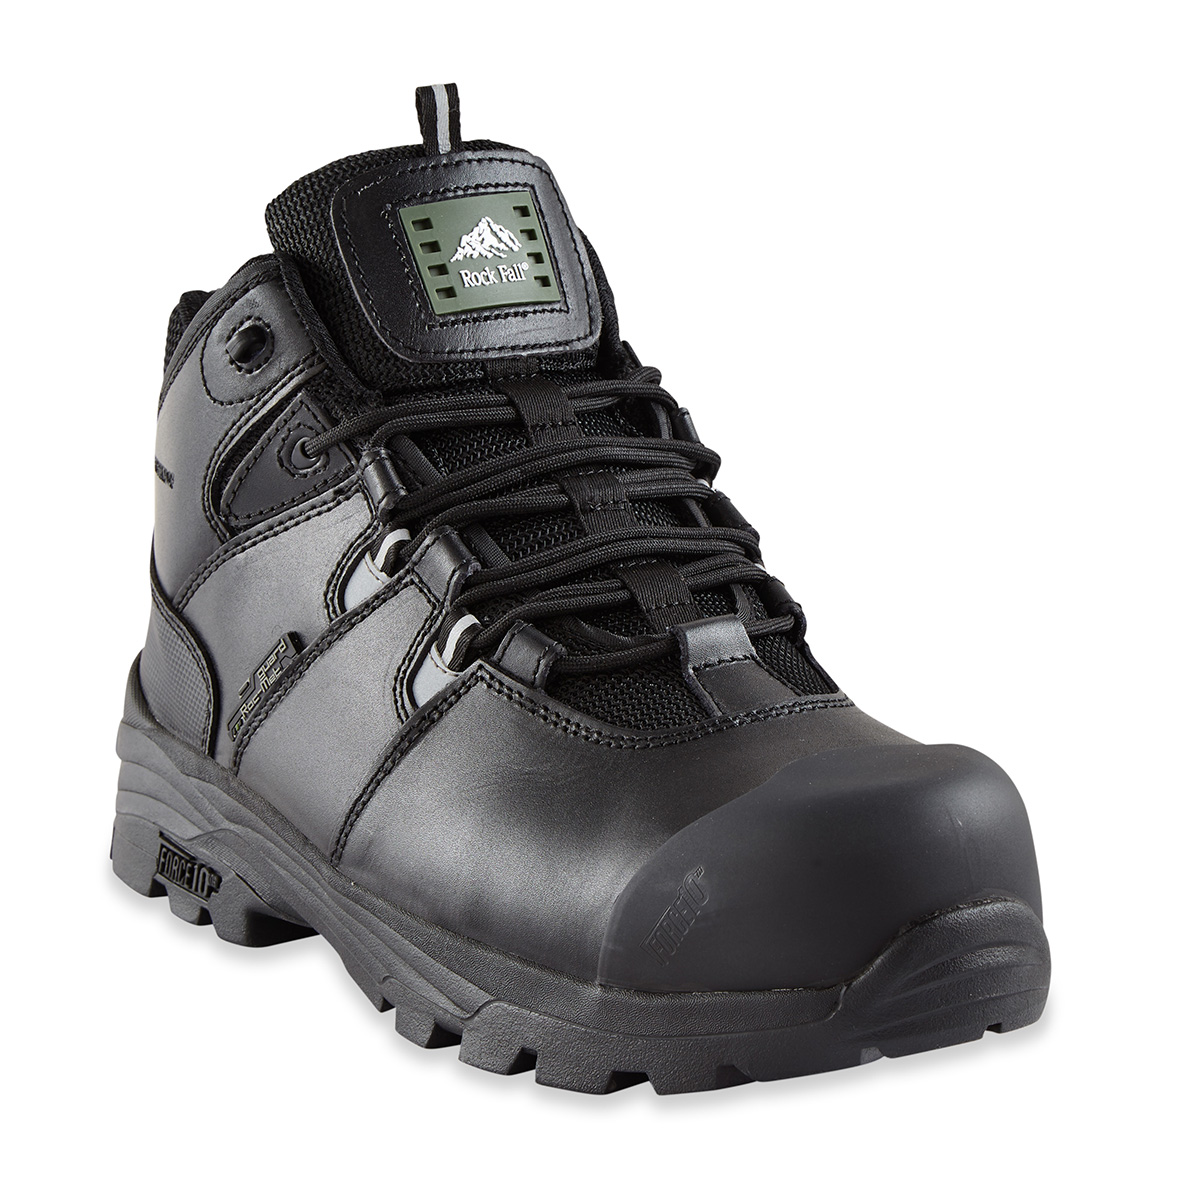 08fd5d7643e Rhyolite Metatarsal Protective Safety Boot